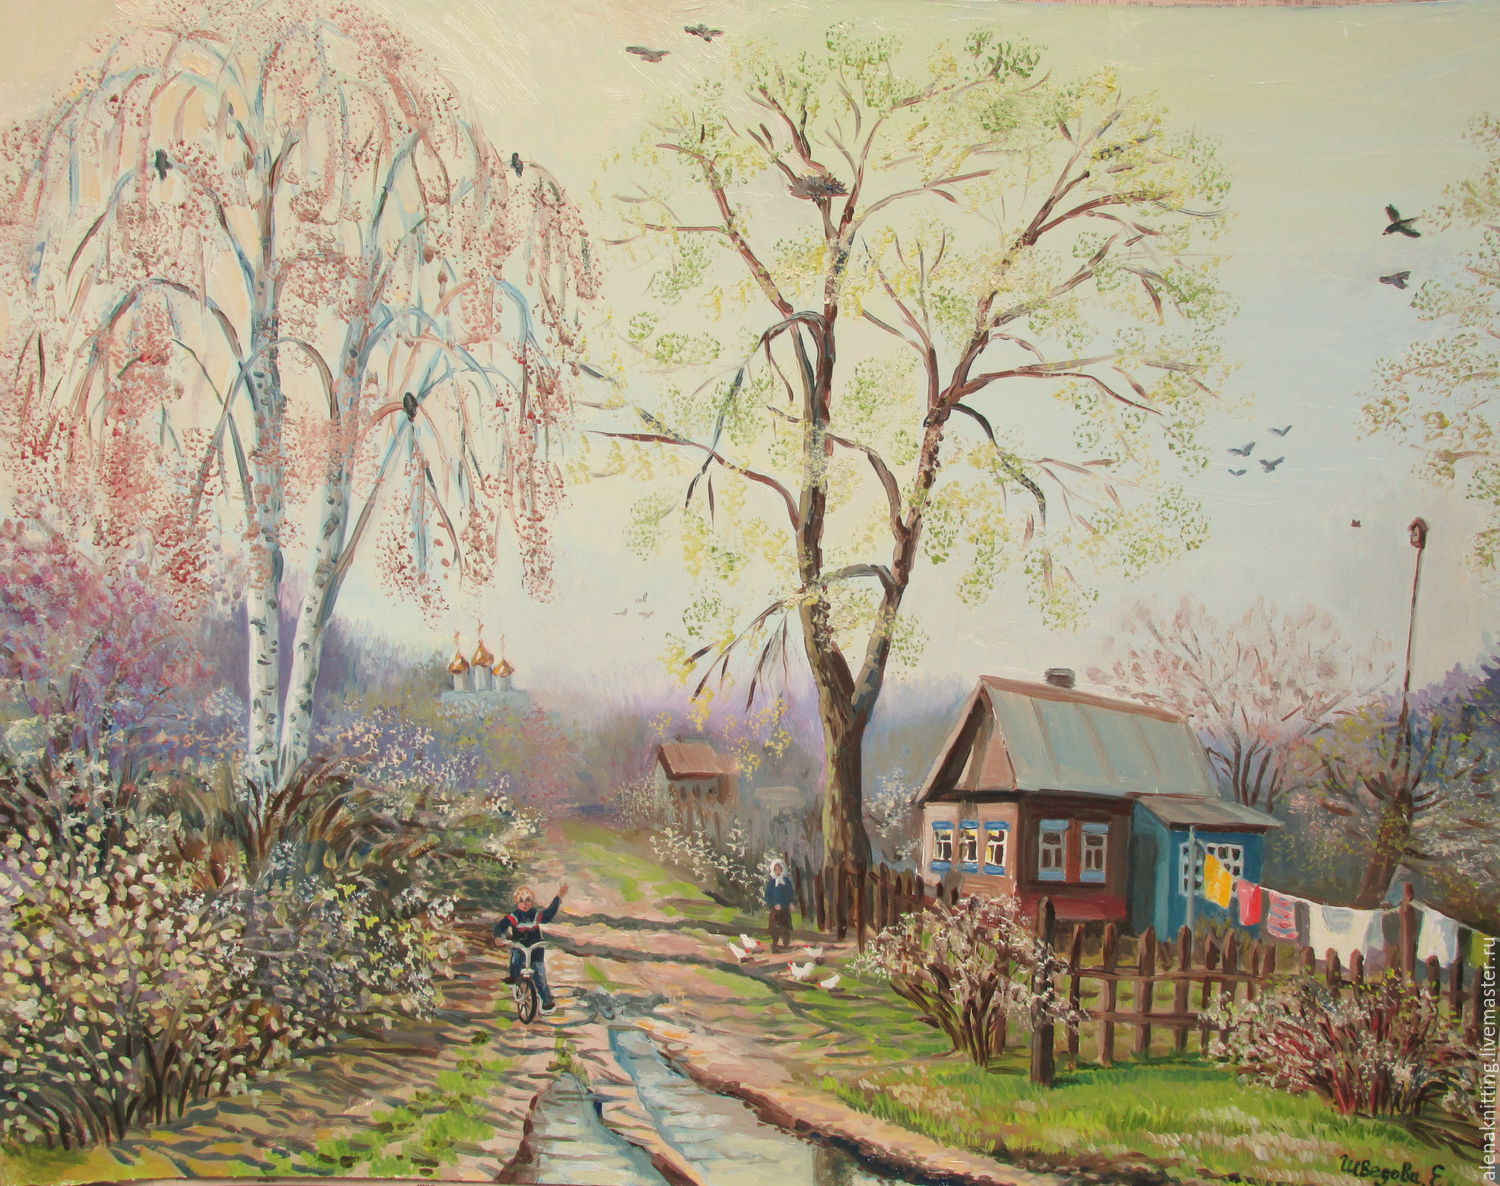 Elena Shvedova oil Painting ` April in the village ` ( art cardboard, oil) 40 x 50. 2016. The author's work., like all my work.